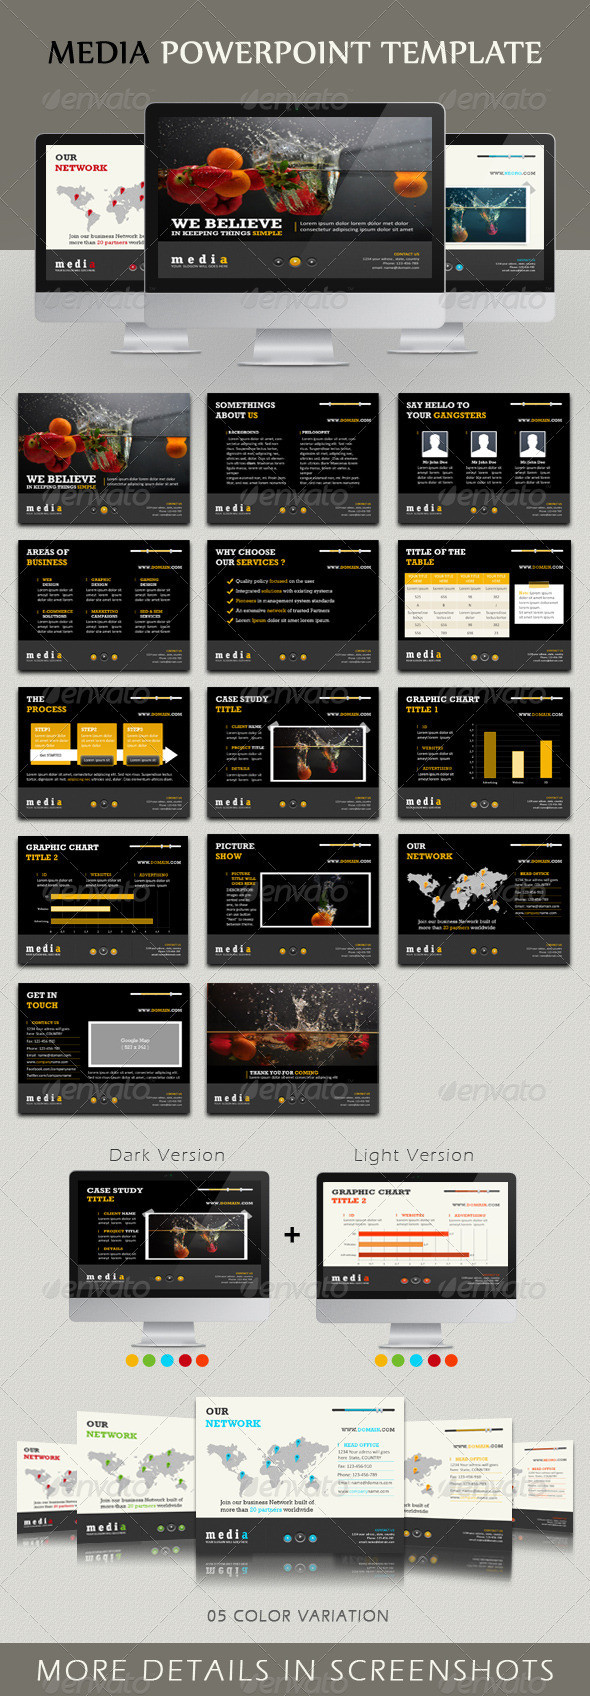 Media Powerpoint Template - Powerpoint Templates Presentation Templates